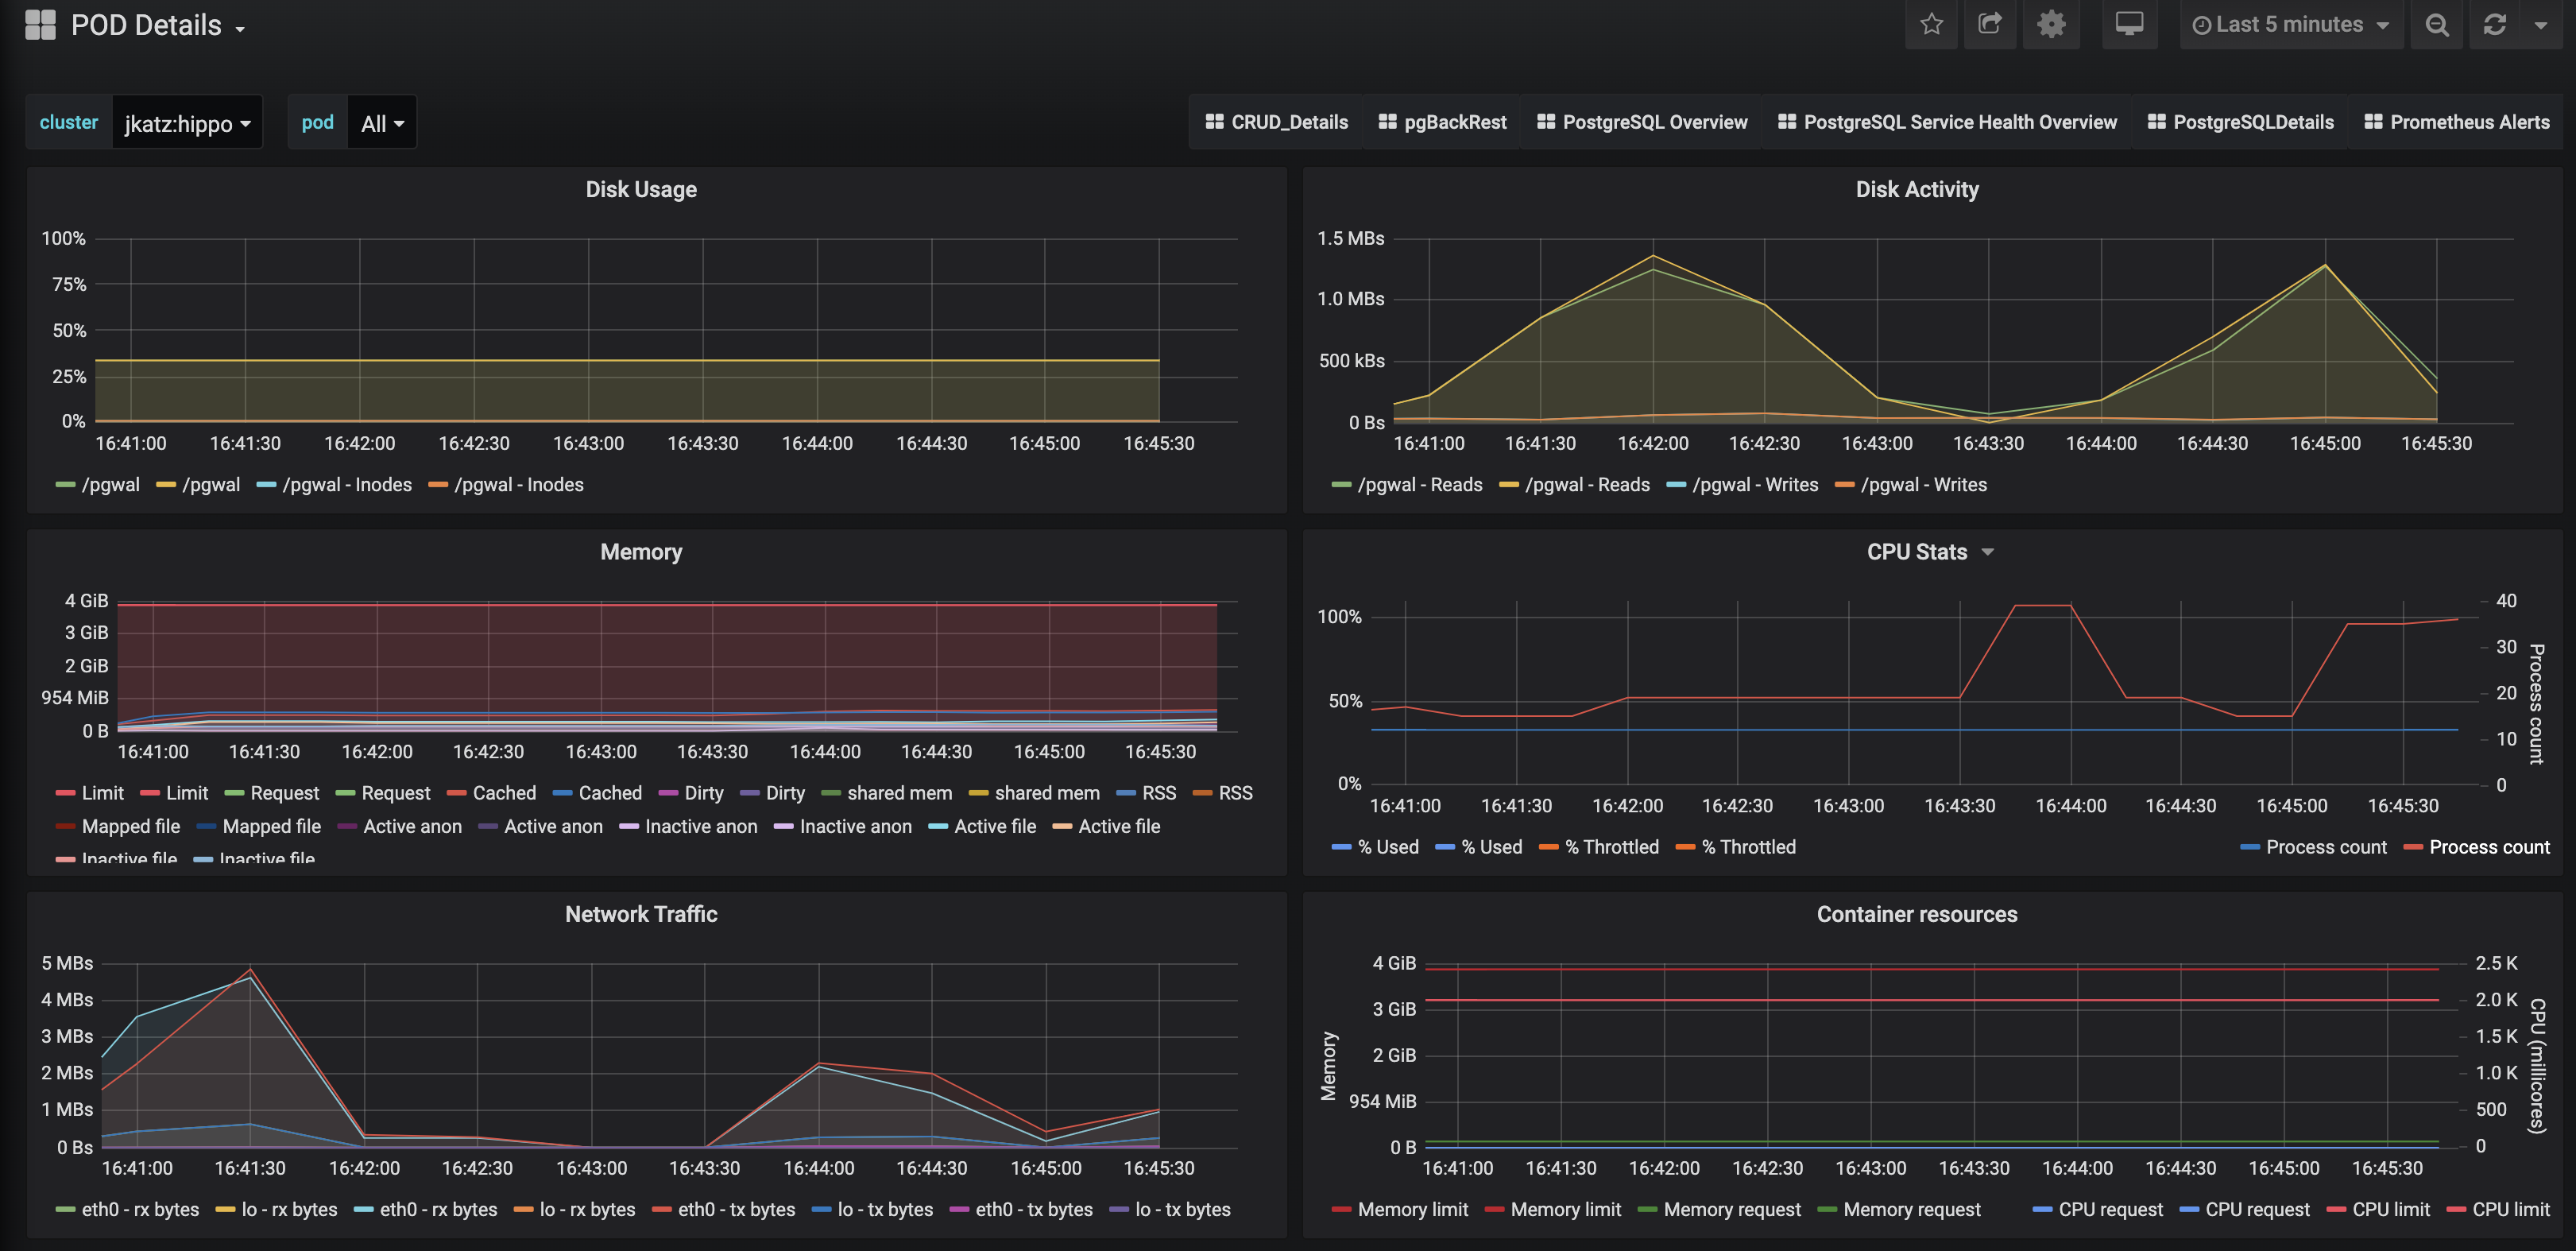 postgresql-monitoring-pod